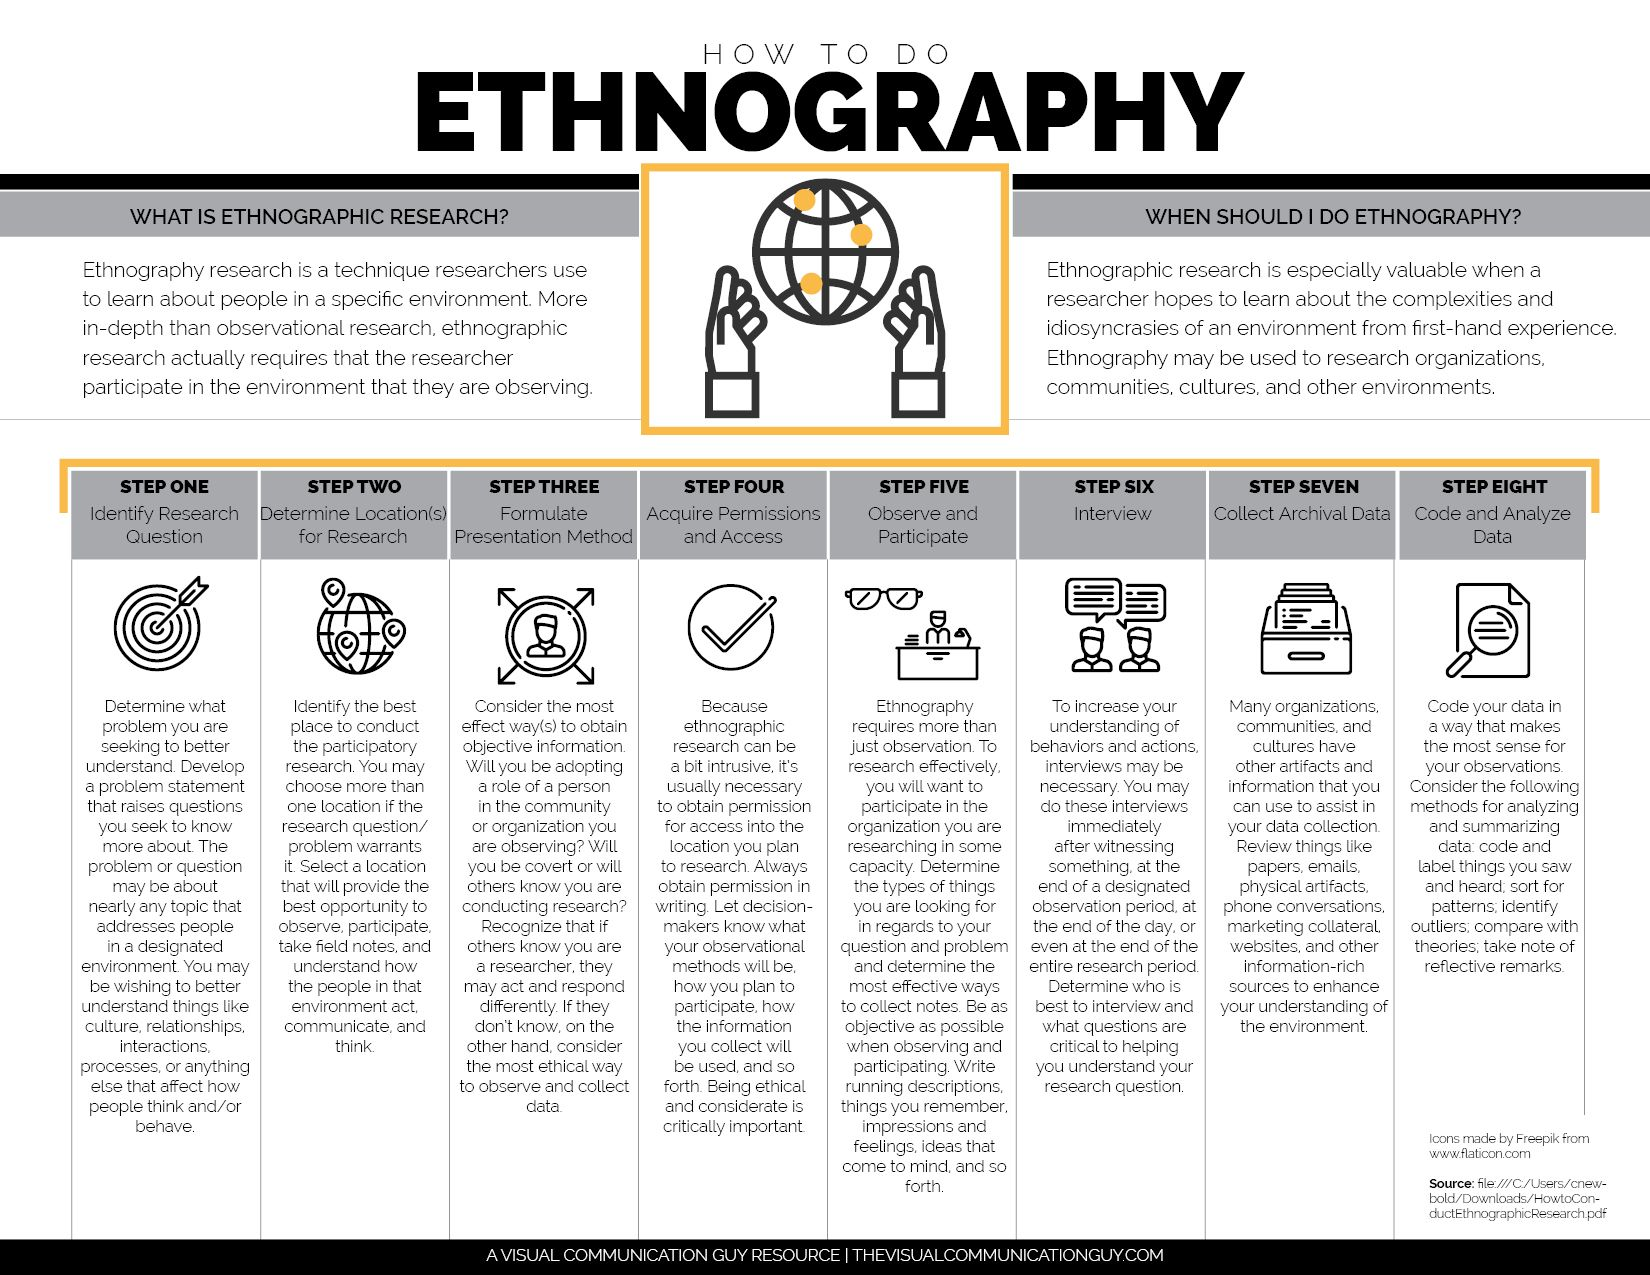 Pin By Tom On Qualitative Ethnography Ux User Experience In 2020 With Image Data Science Learning Academic Research Media And Culture Dissertation Topics Topic